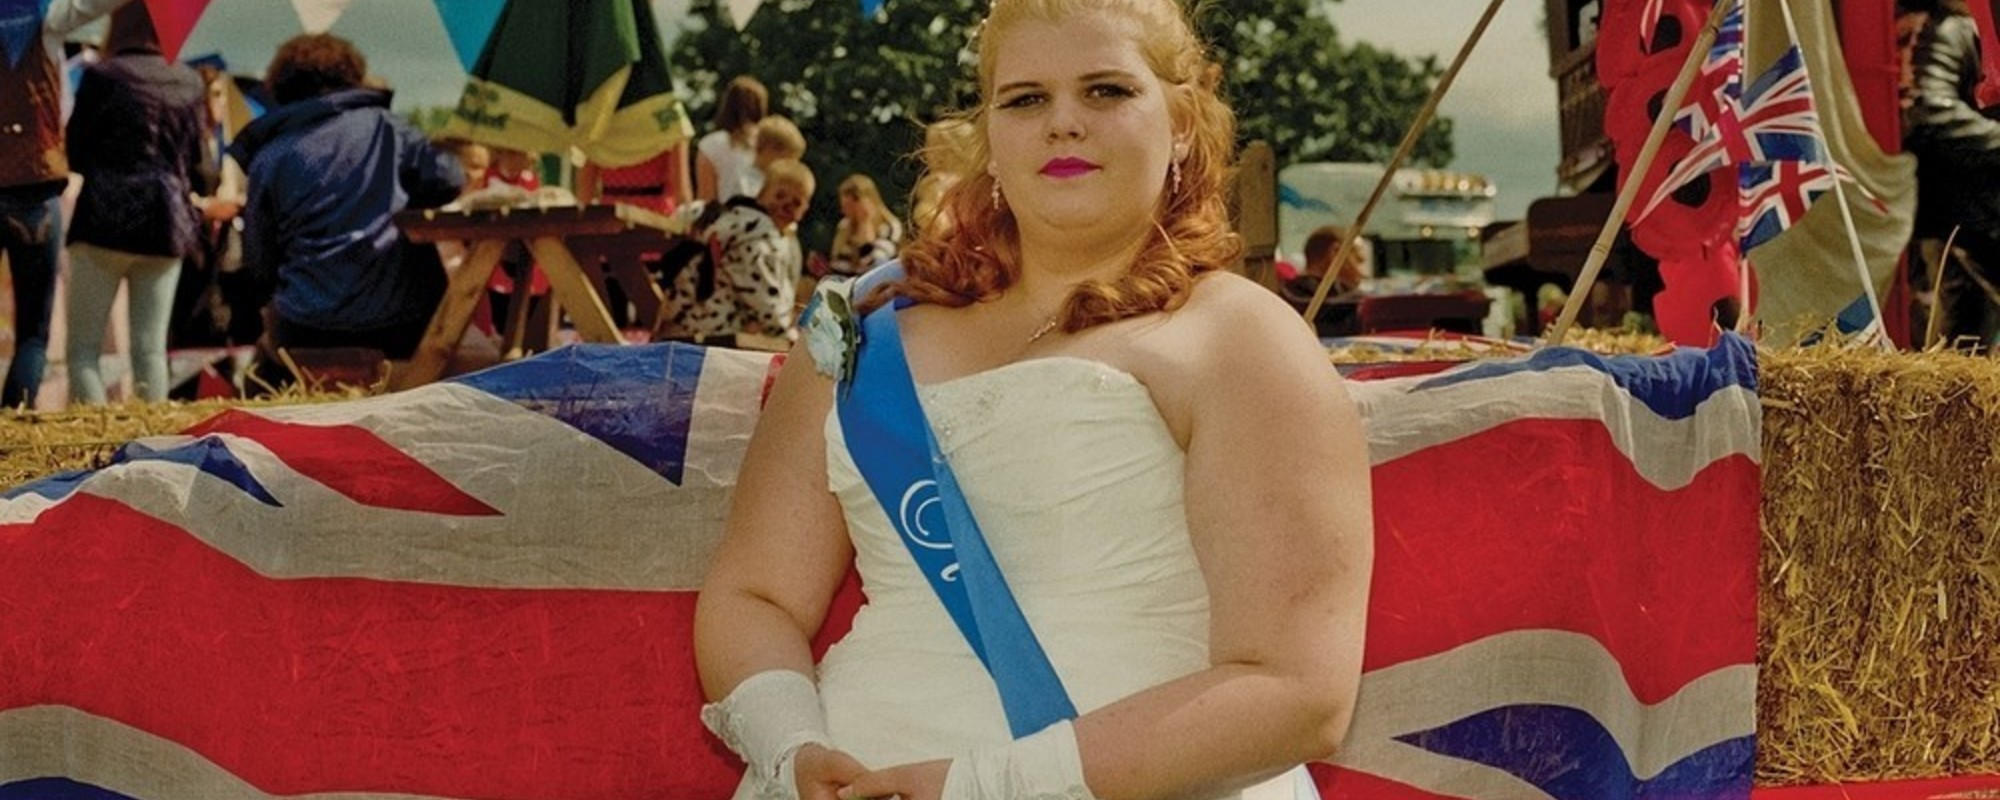 The Other Royals: foto's van Engelse carnavalskoningen en koninginnen